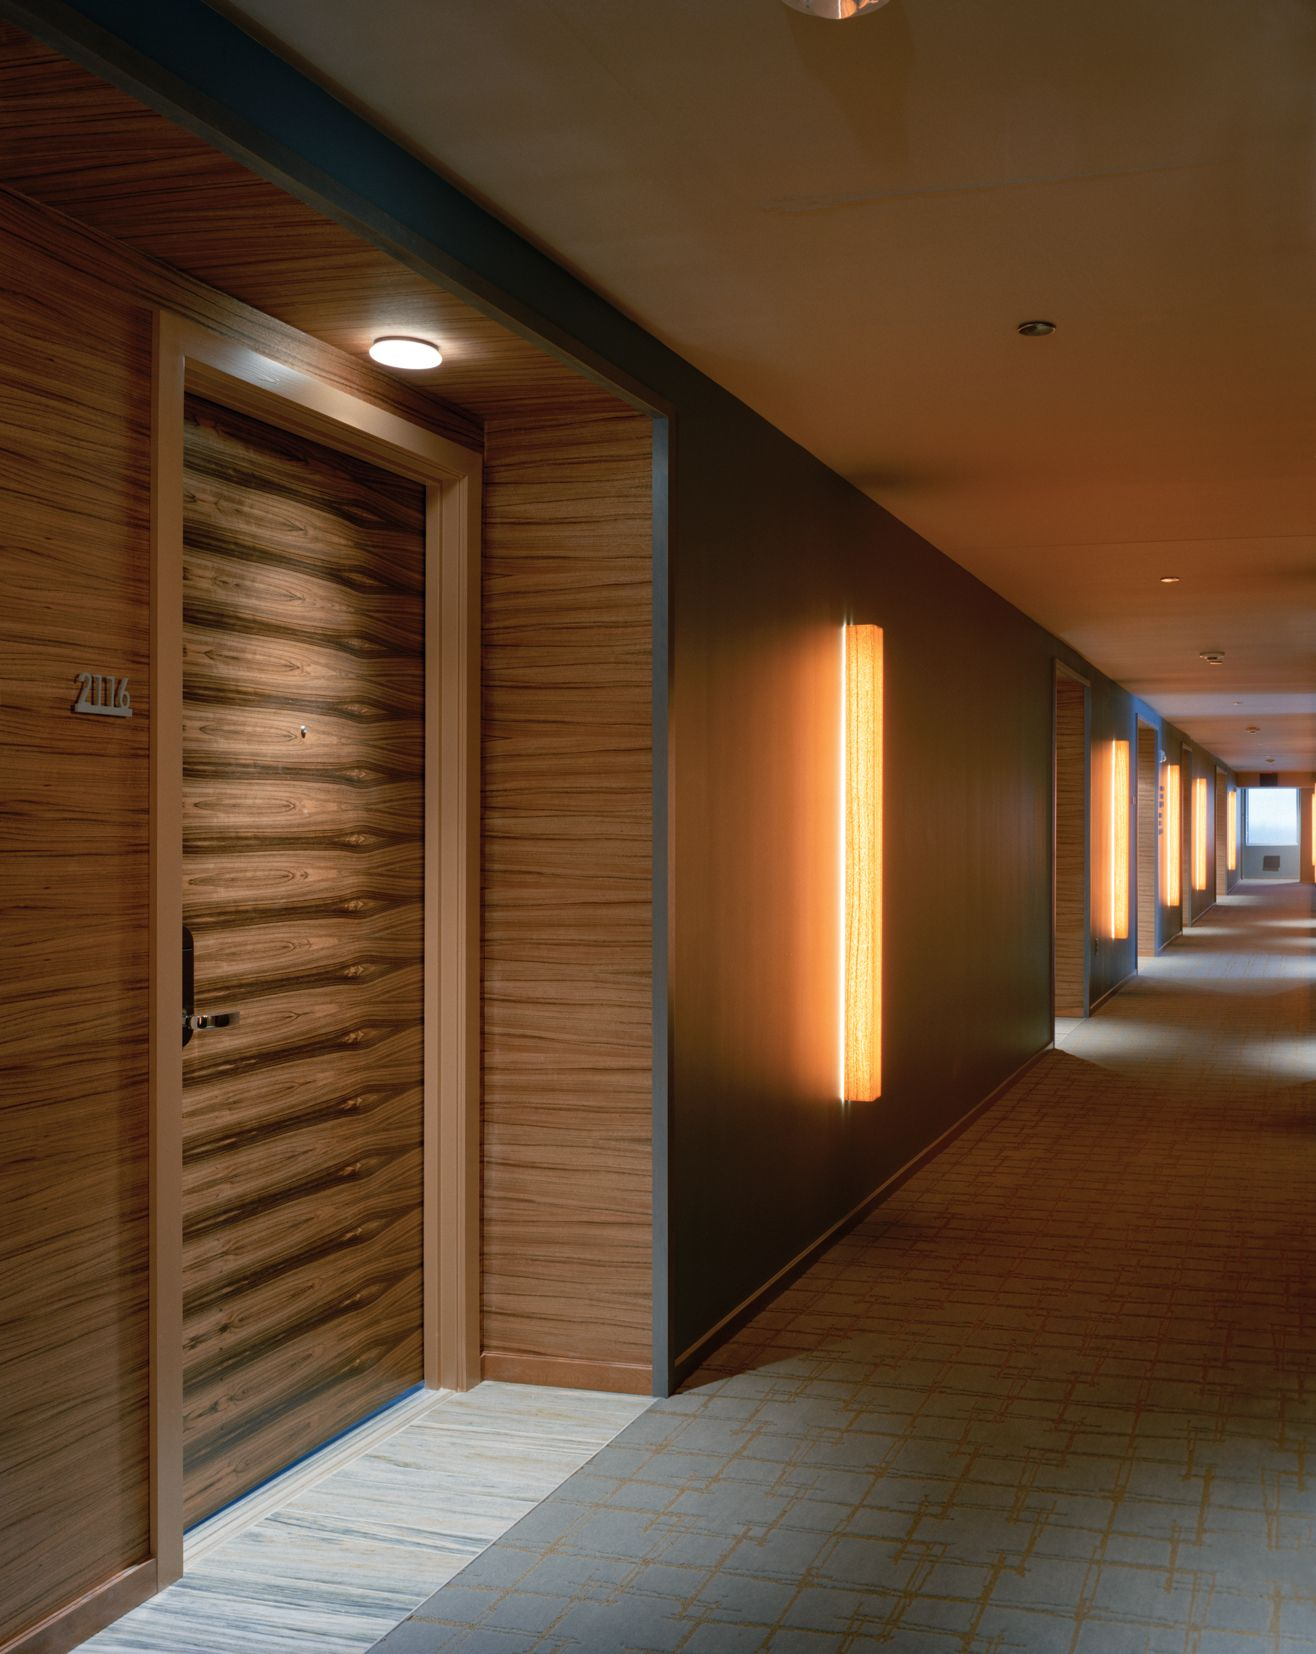 Image Result For Hotel Room Door Designs: Luxurious Paldao Wood Embraces All 22 Stories Of The Hotel